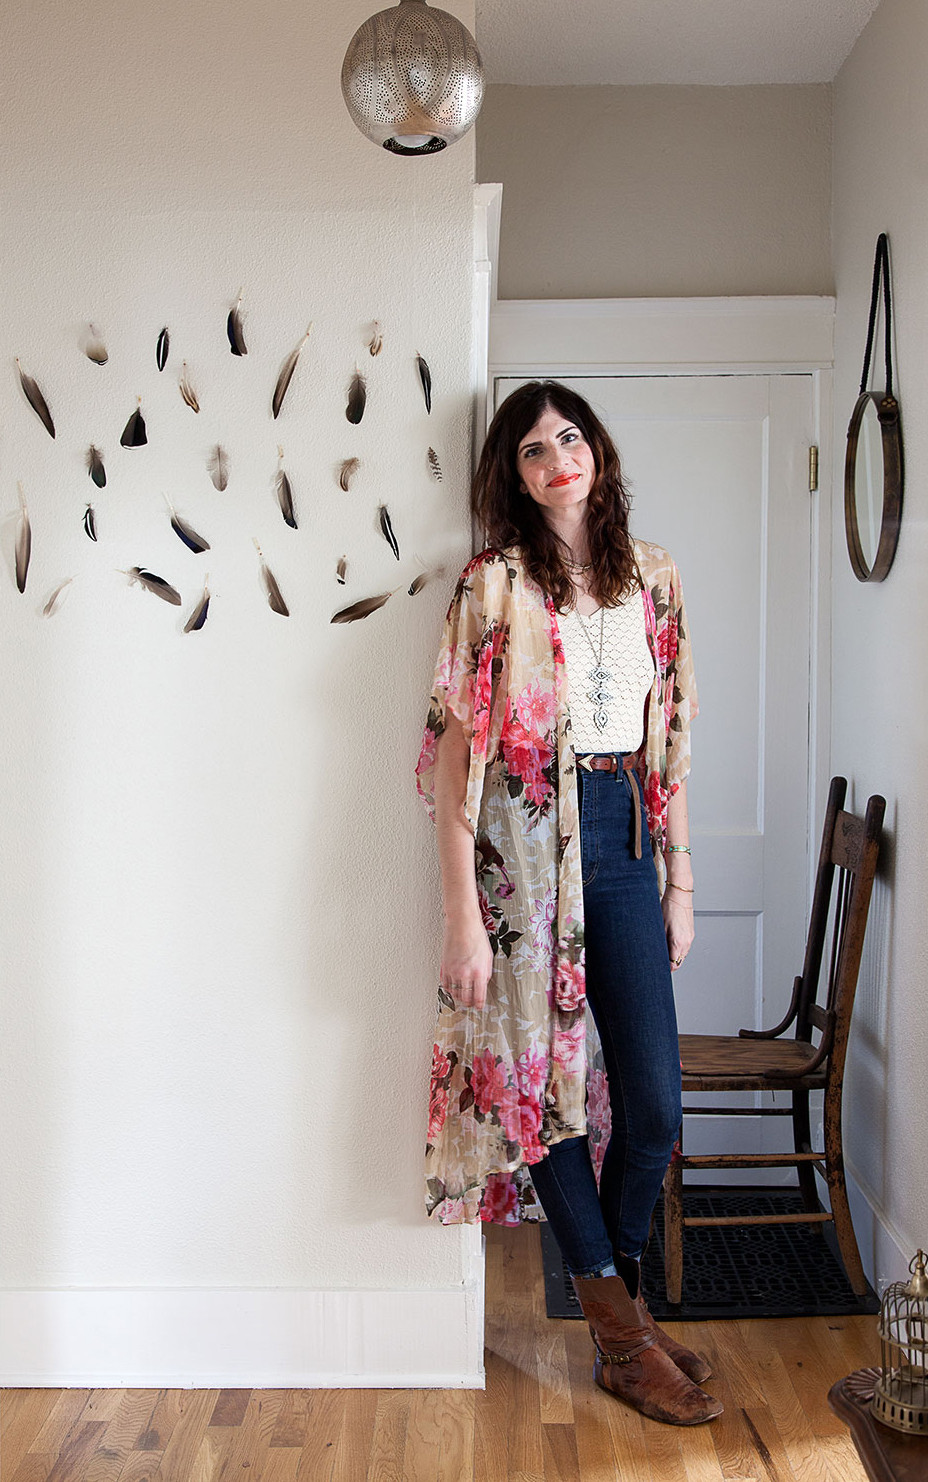 Stylist and designer Ruthie Lindsey next to a feather installation on her wall.